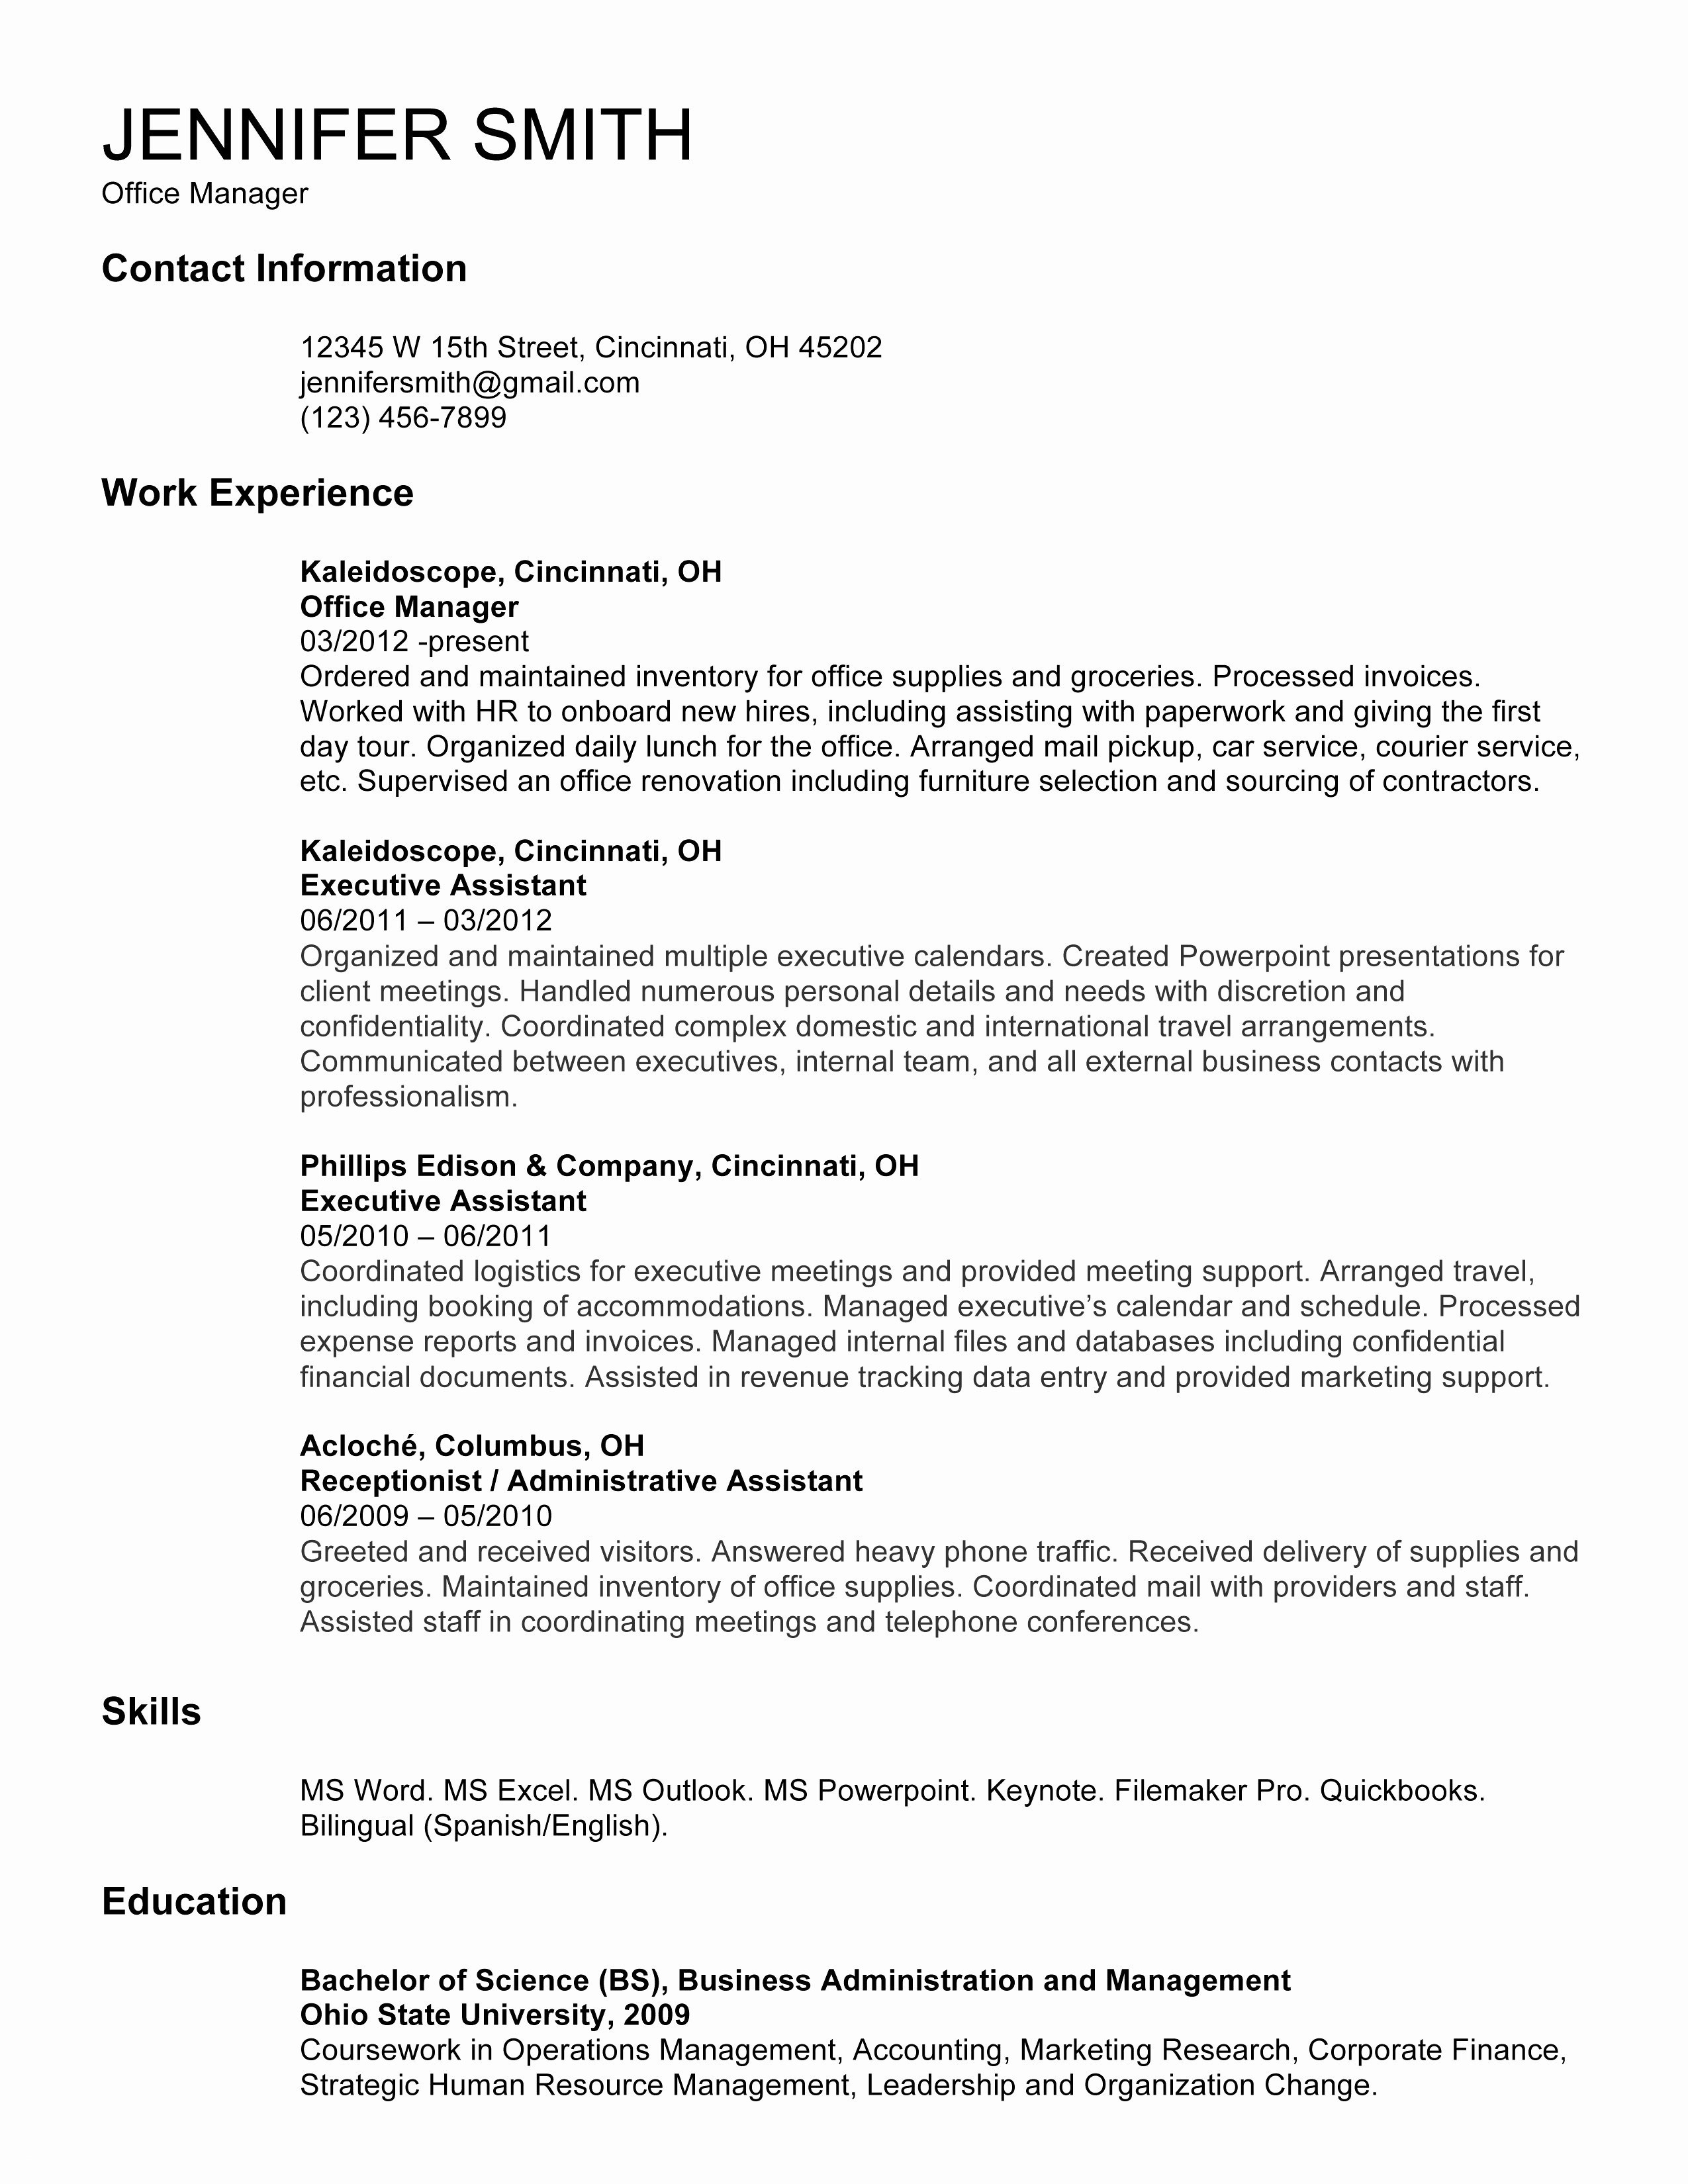 accounting internship resume example-Sample Executive Resume Elegant American Resume Sample New Student Resume 0d Wallpapers 42 Awesome Accounting Intern 1-j